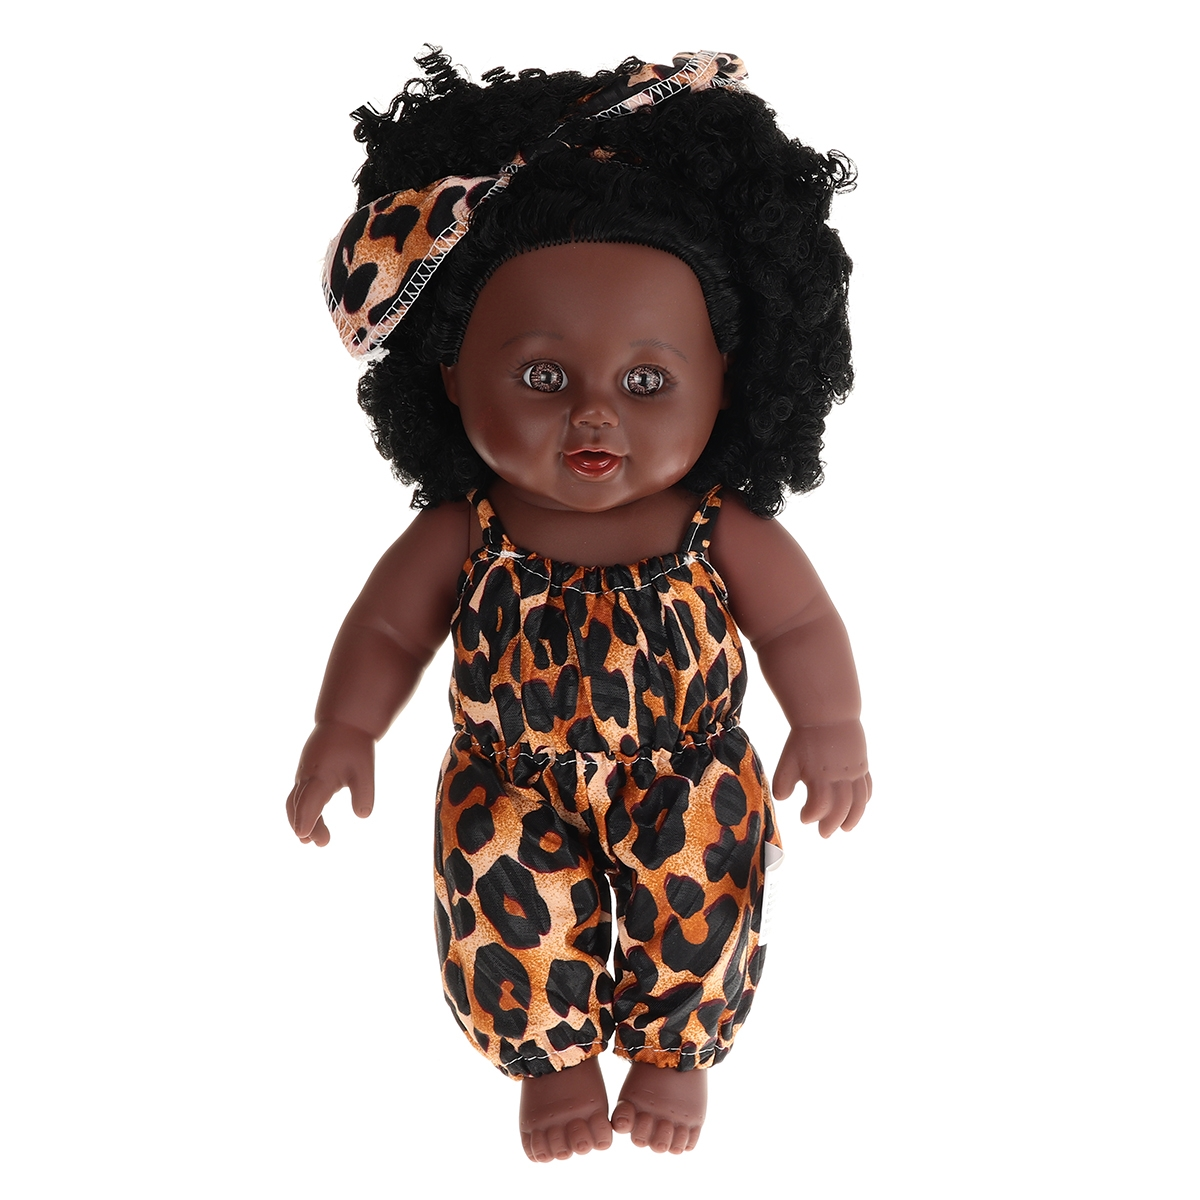 12Inch Simulation Soft Silicone Vinyl PVC Black Baby Fashion Doll Rotate 360° African Girl Perfect Reborn Doll Toy for Birthday Gift